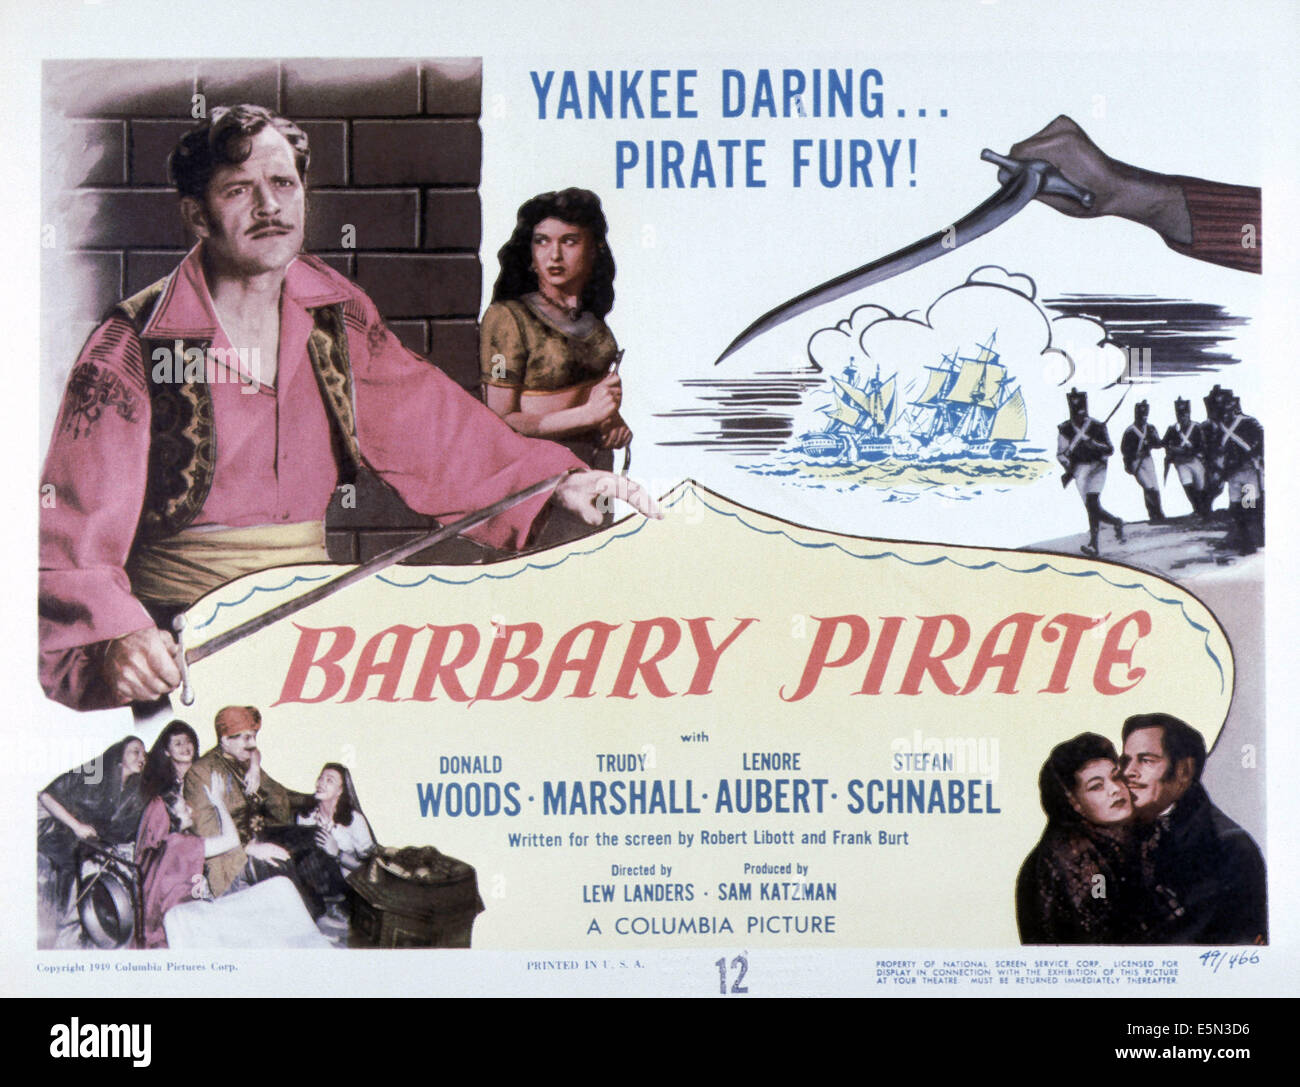 BARBARY PIRATE, top from left: Donald Woods, Trudy Marshall, bottom right from left: Trudy Marshall, Donald Woods, - Stock Image